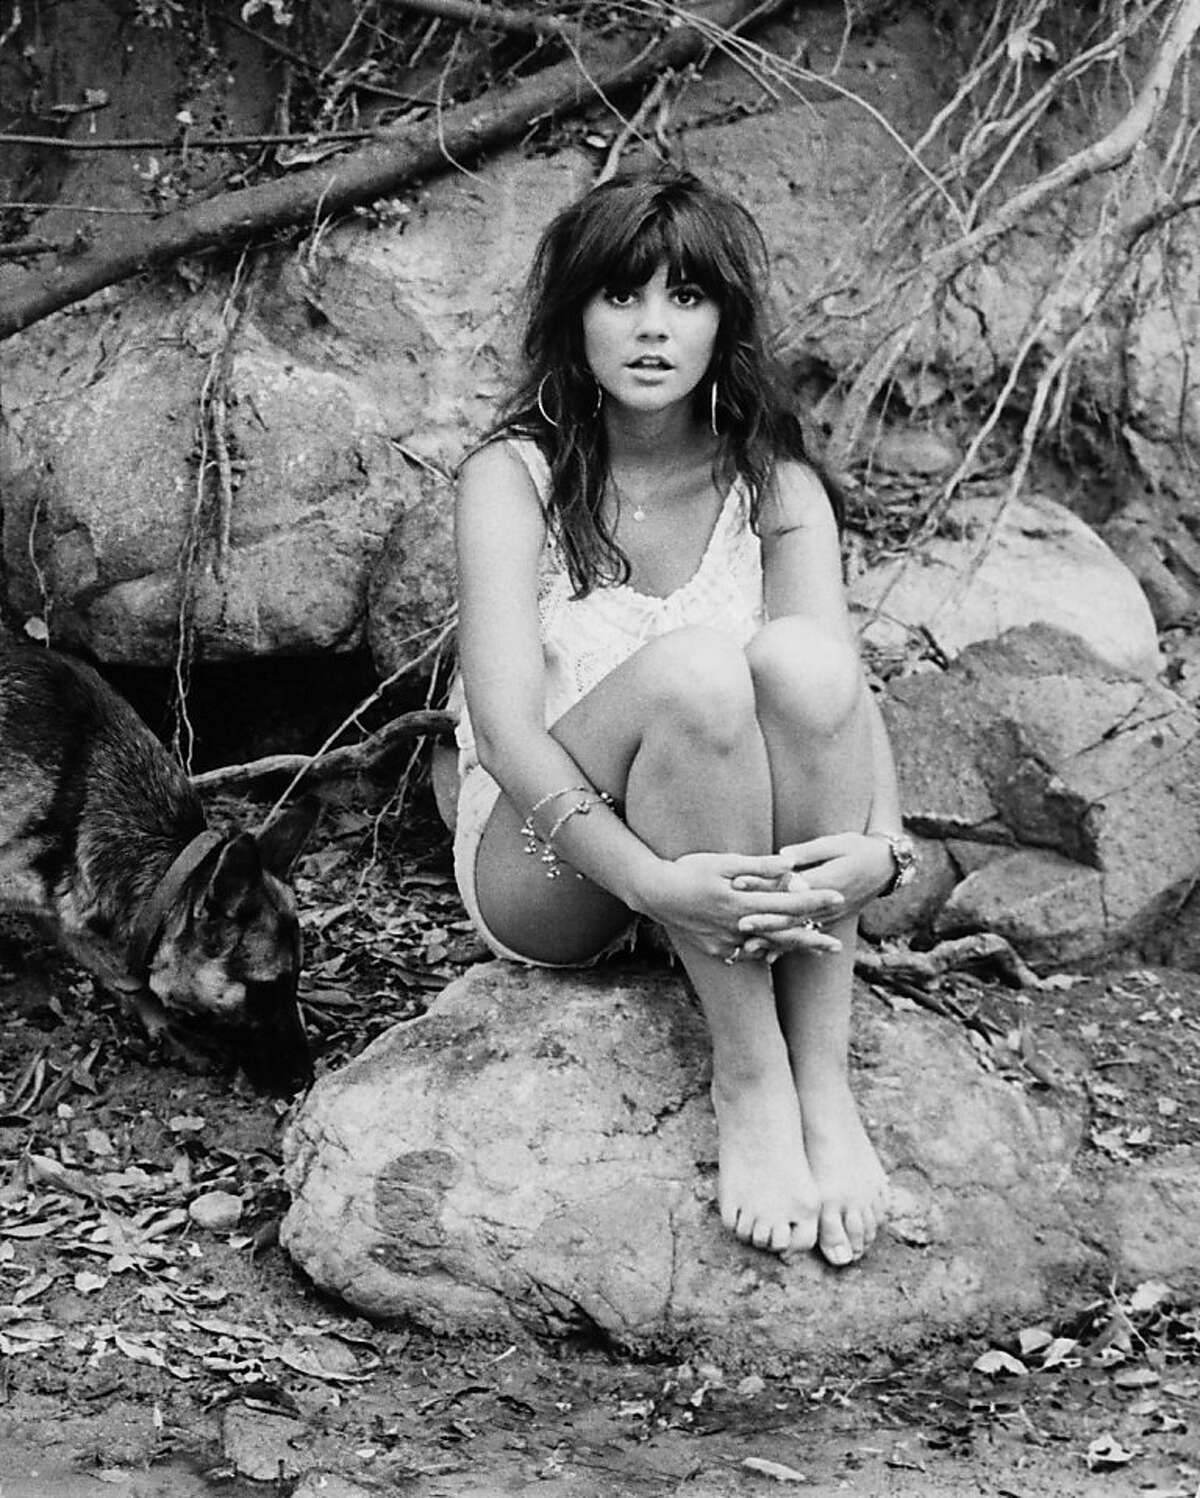 Singer Linda Ronstadt poses for a portrait for her first solo album 'Hand Sown ... Home Grown' on March 1, 1968 in Topanga, California. (Photo by Ed Caraeff/Getty Images)